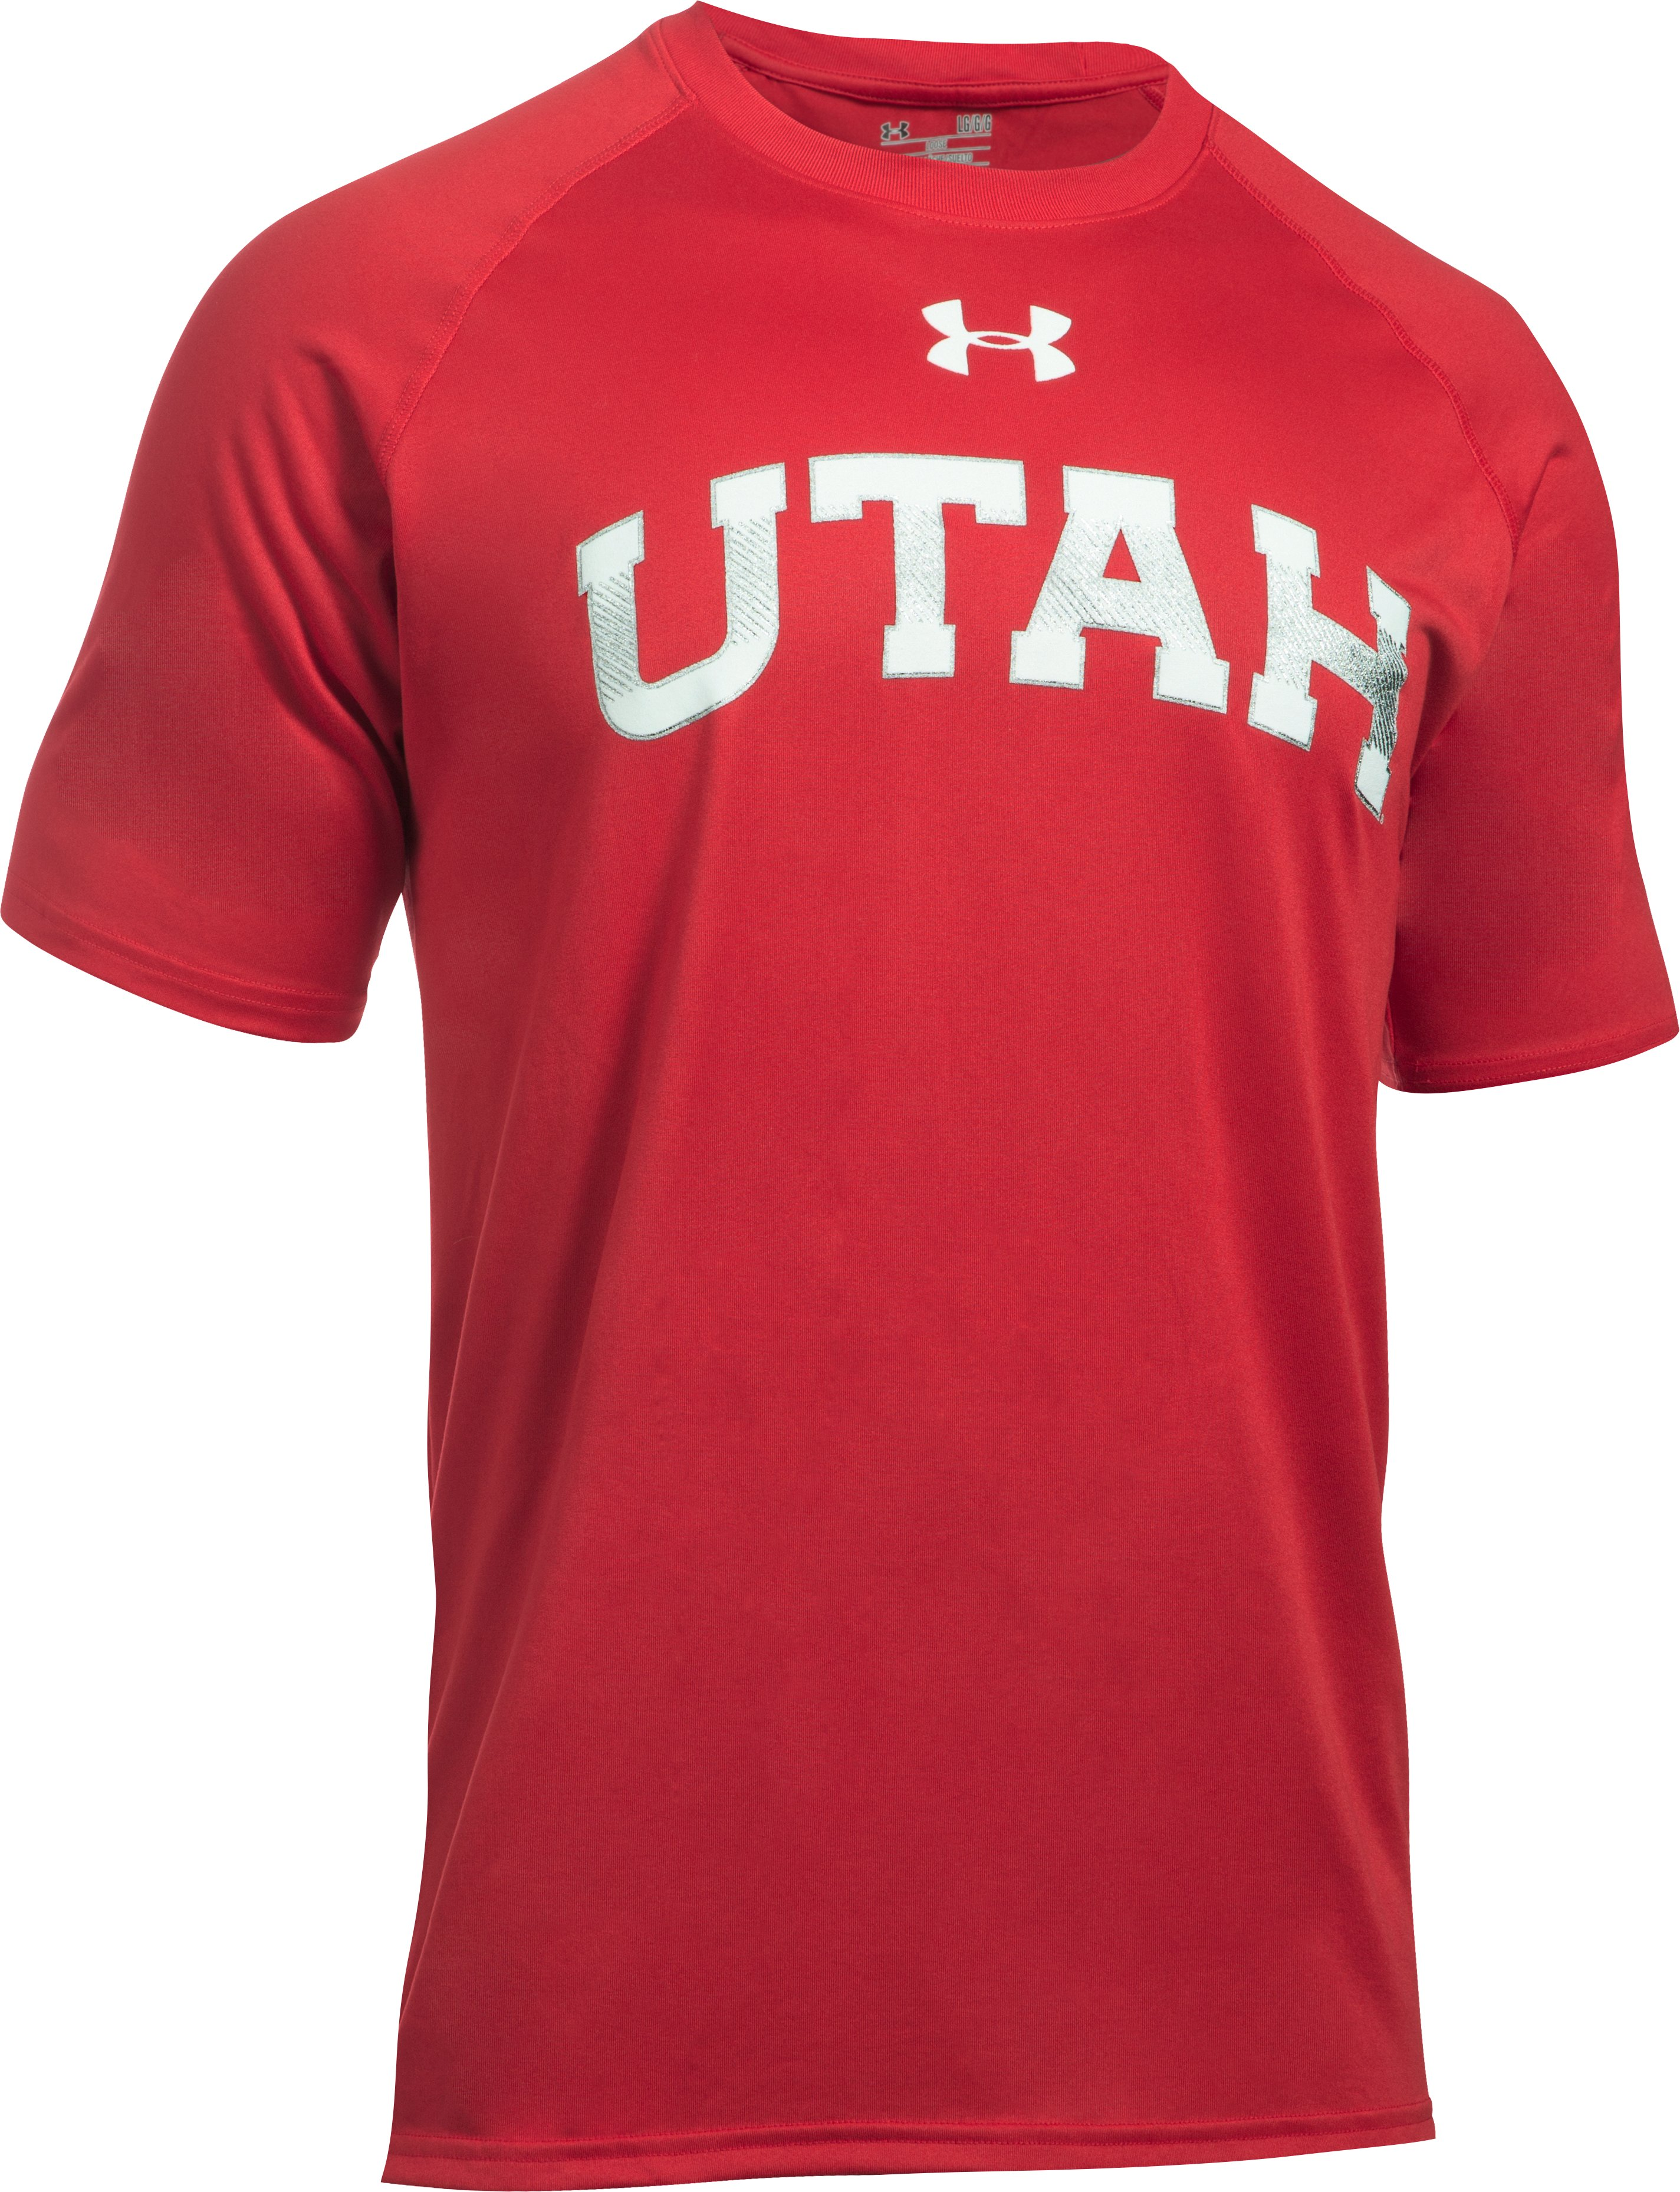 Men's Utah UA Tech™ Team T-Shirt, Red, undefined